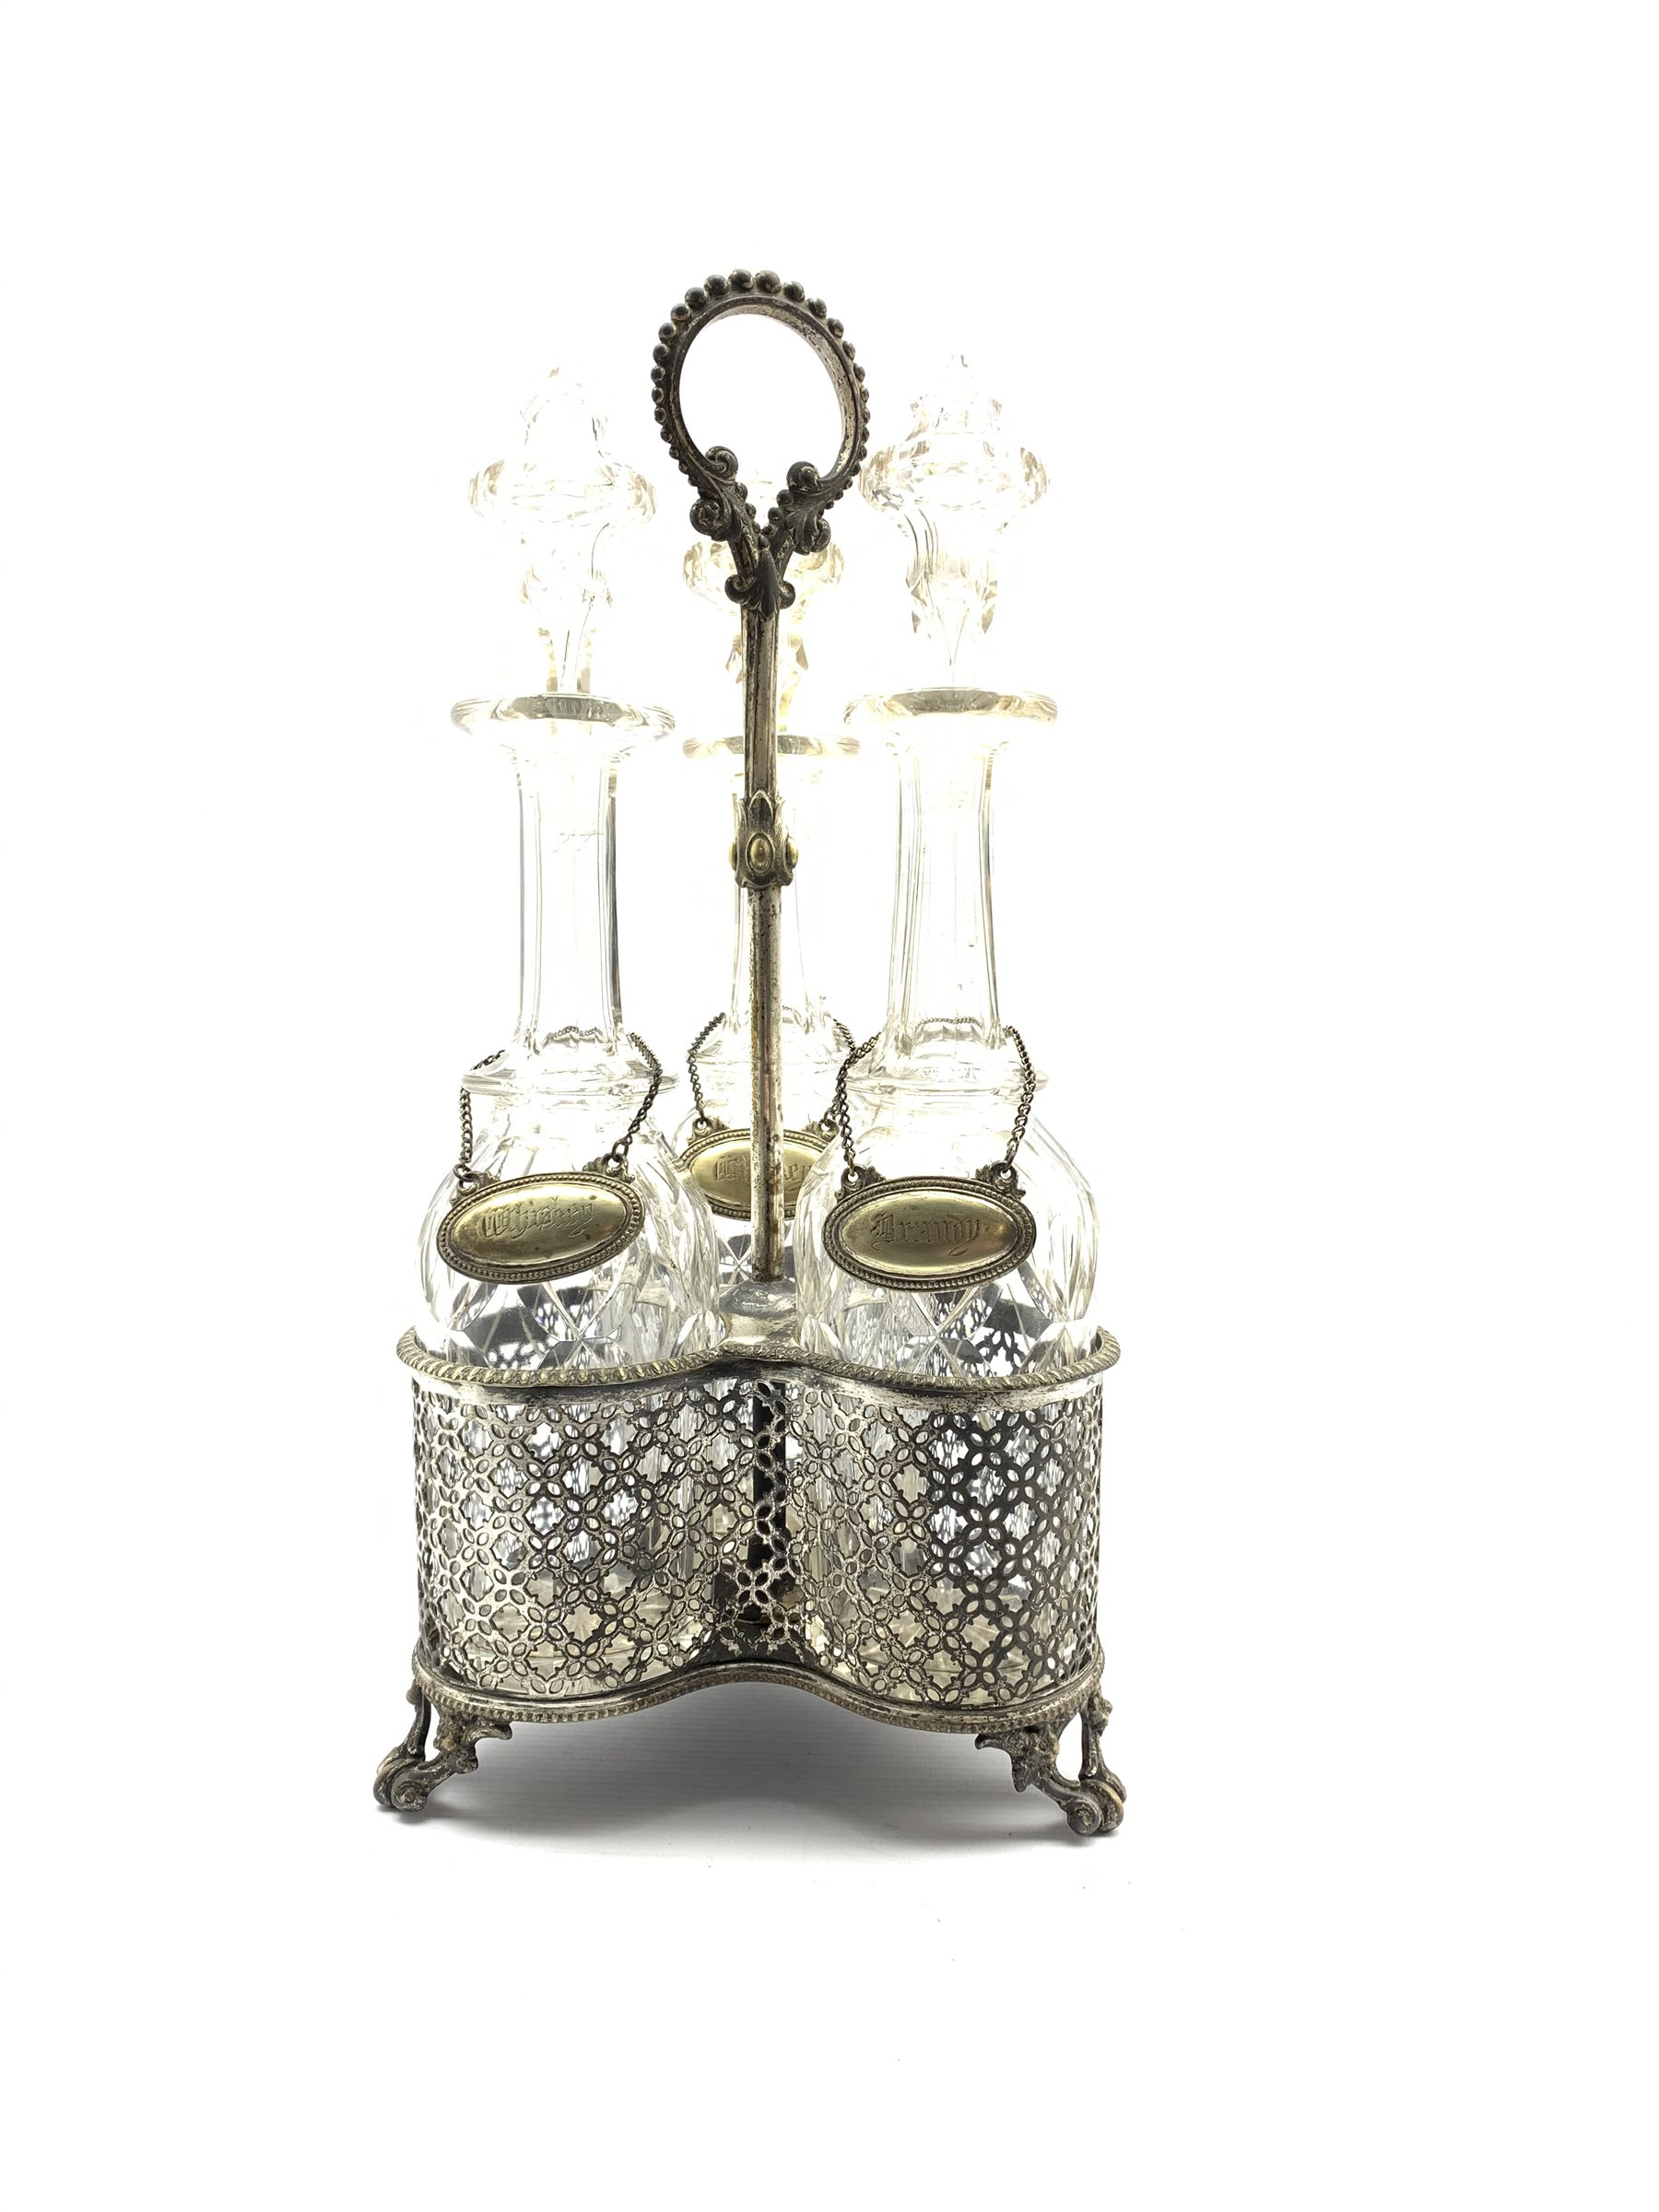 Early 20th century silver-plated three division decanter stand with loop handle, pierced sides and f